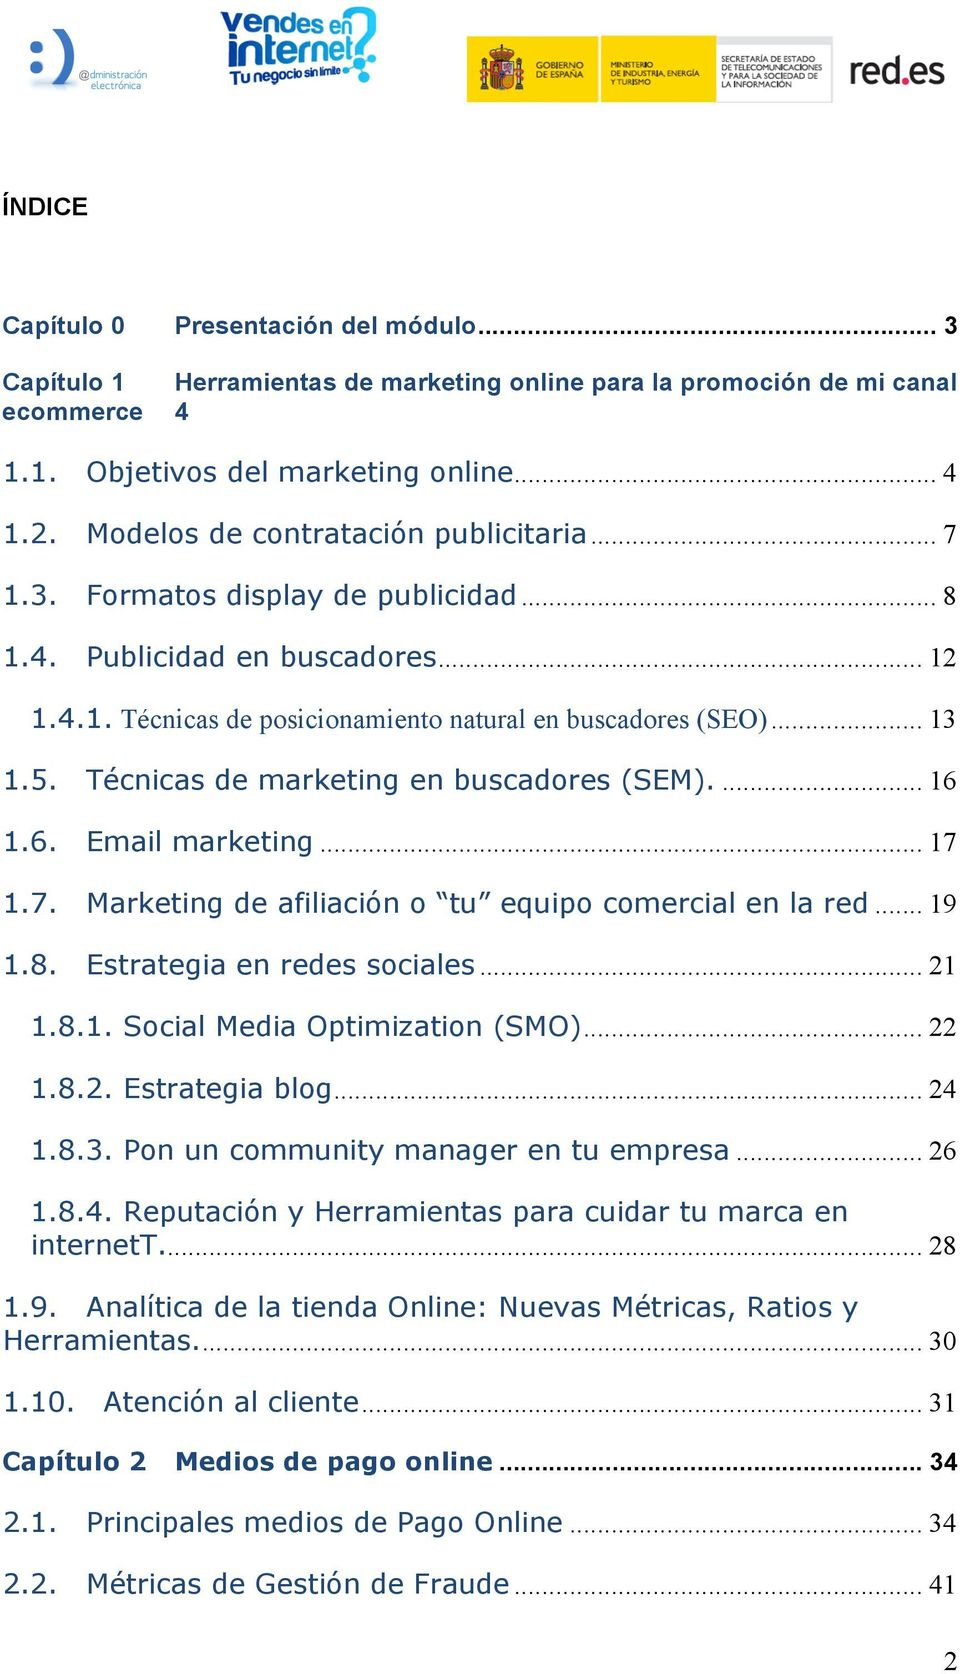 Técnicas de marketing en buscadores (SEM).... 16 1.6. Email marketing... 17 1.7. Marketing de afiliación o tu equipo comercial en la red... 19 1.8. Estrategia en redes sociales... 21 1.8.1. Social Media Optimization (SMO).